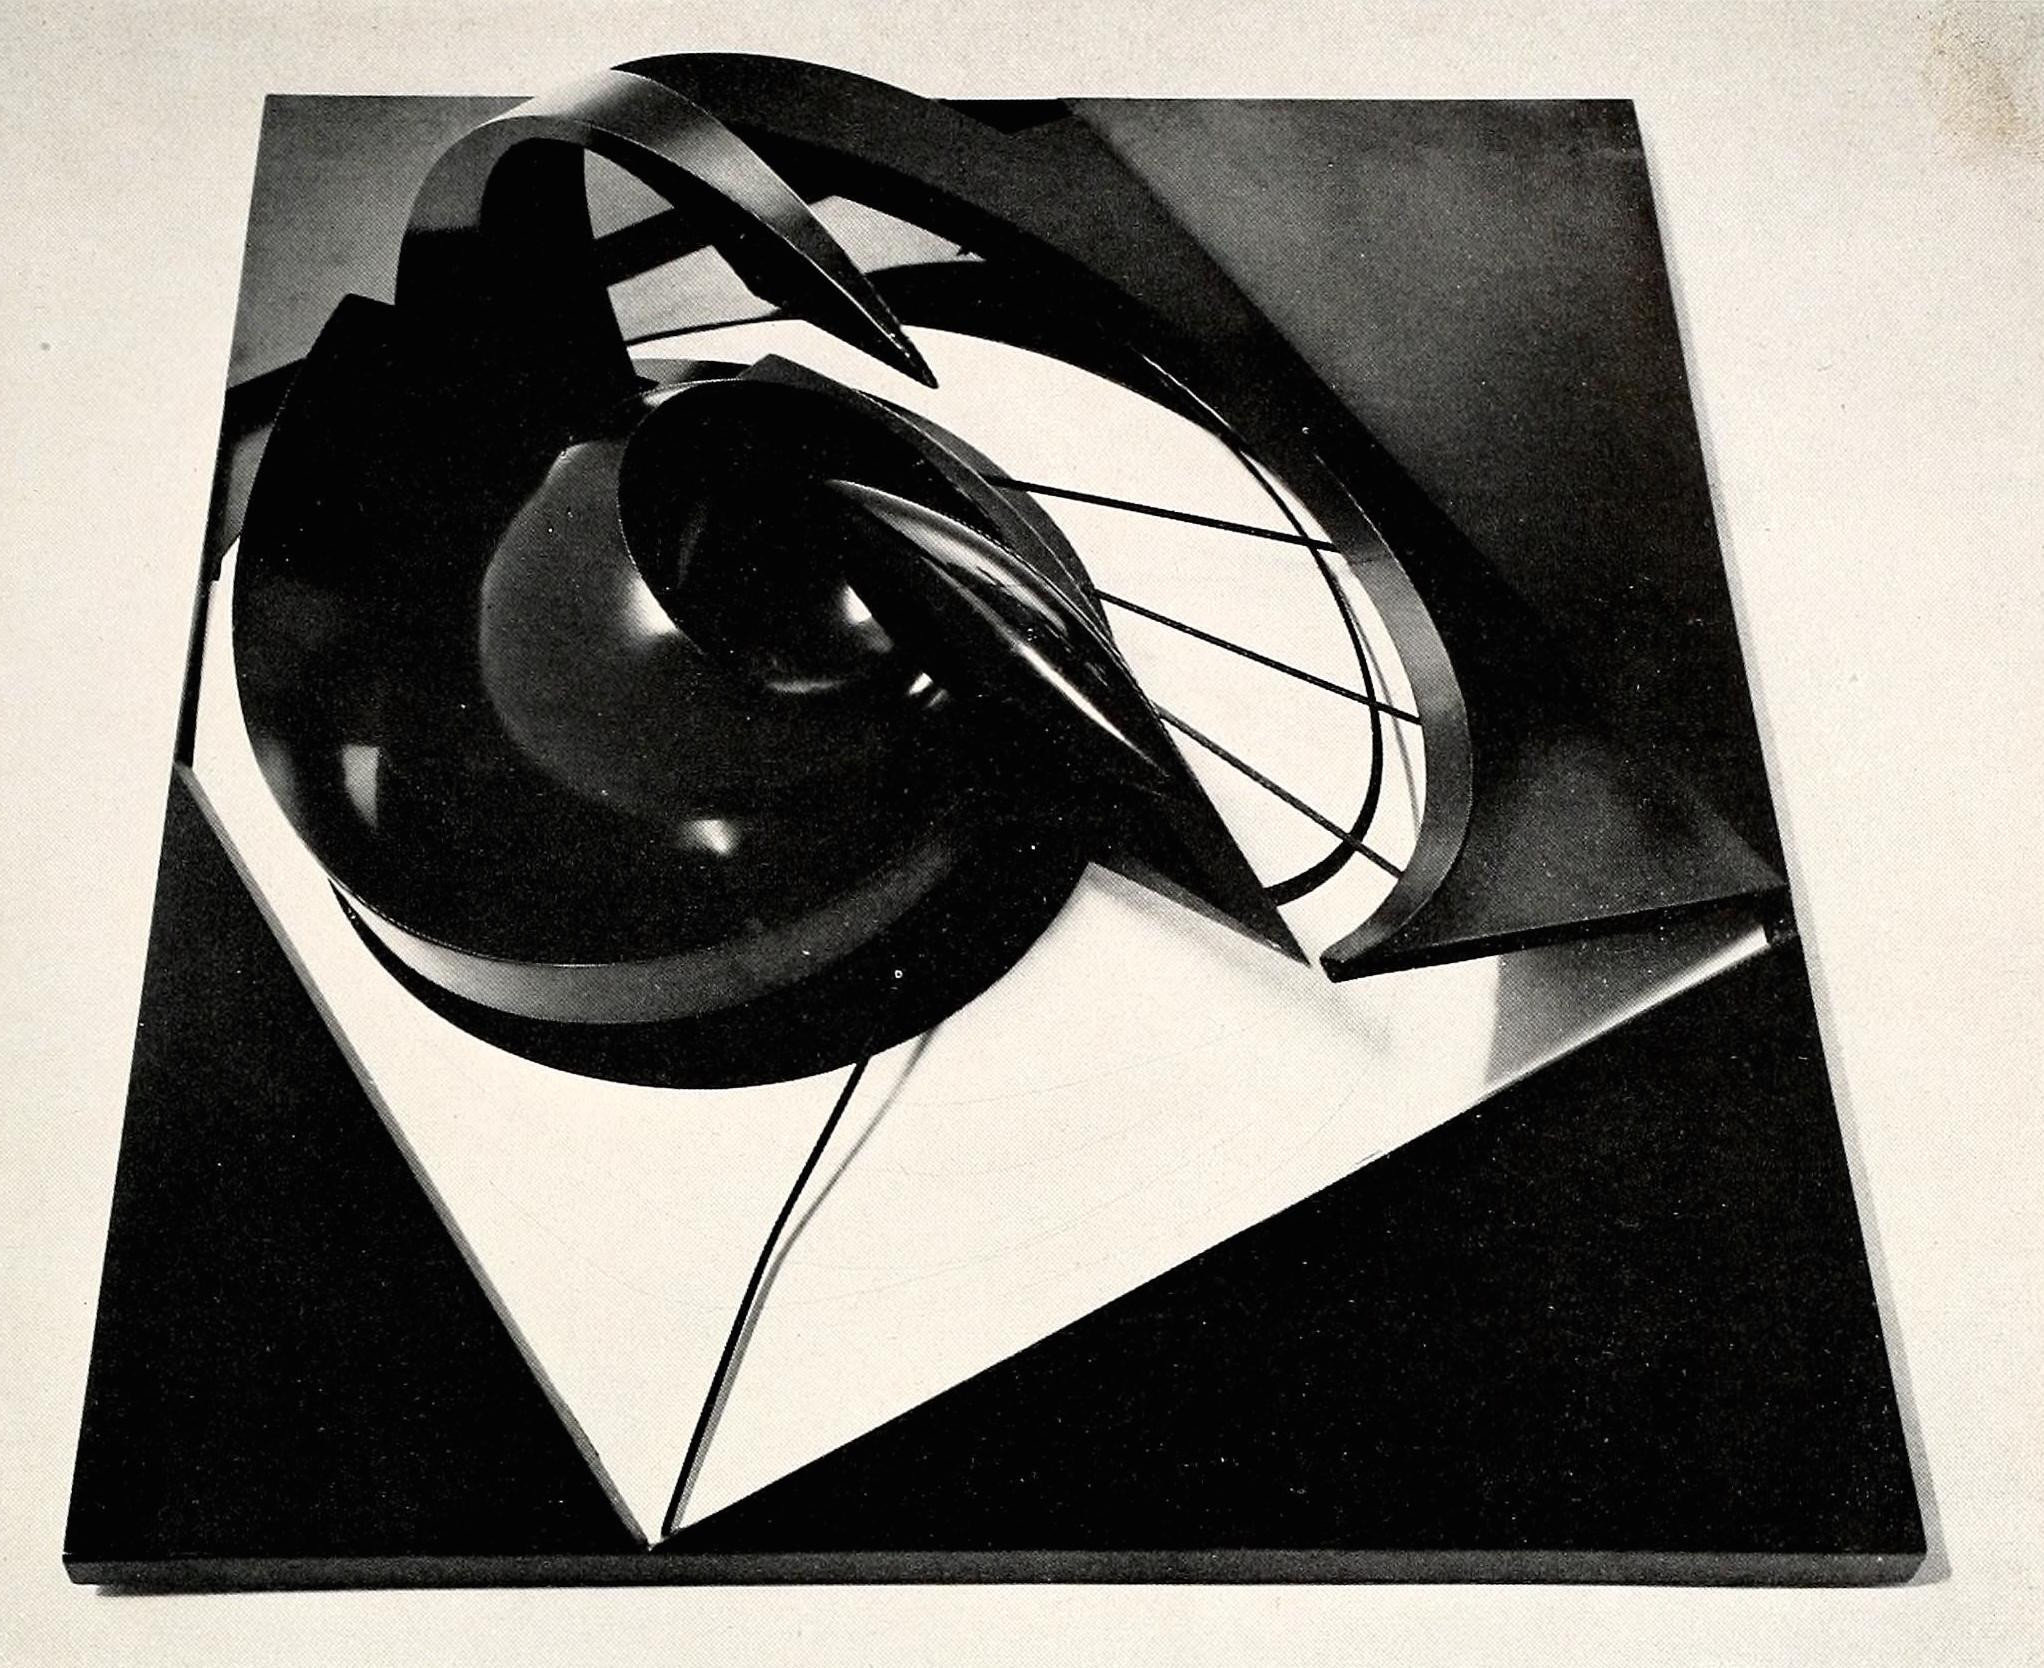 """Antoine Pevsner, projection into space (1938), tin and oxidized brass on plastic, 27 x 31"""""""